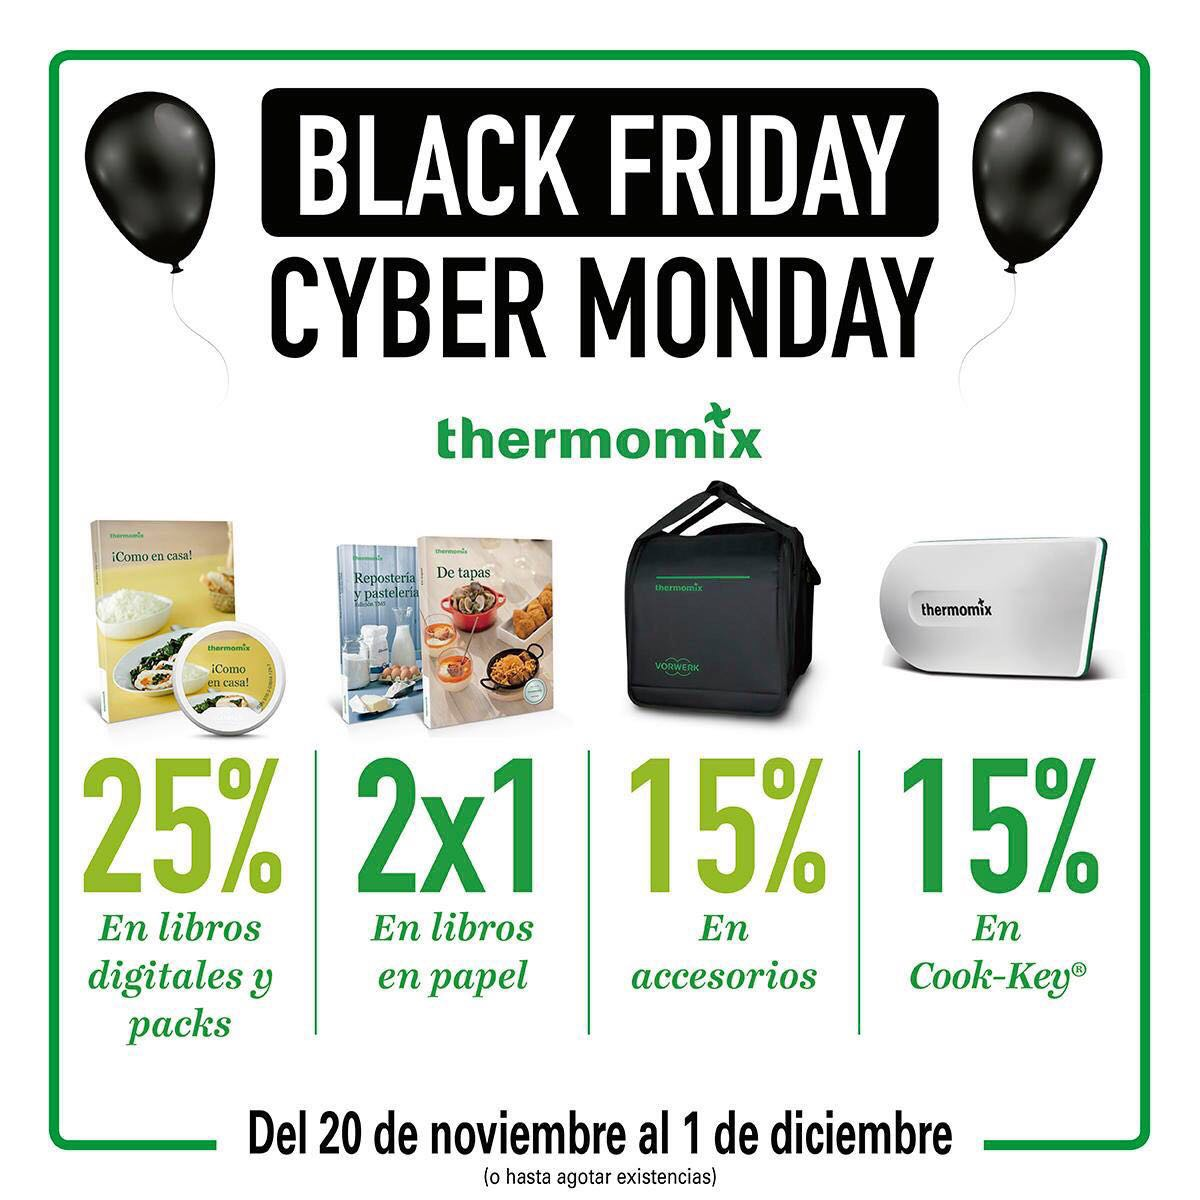 Libros De Thermomix El Black Friday Llega A Thermomix Noticias Blog Blog De